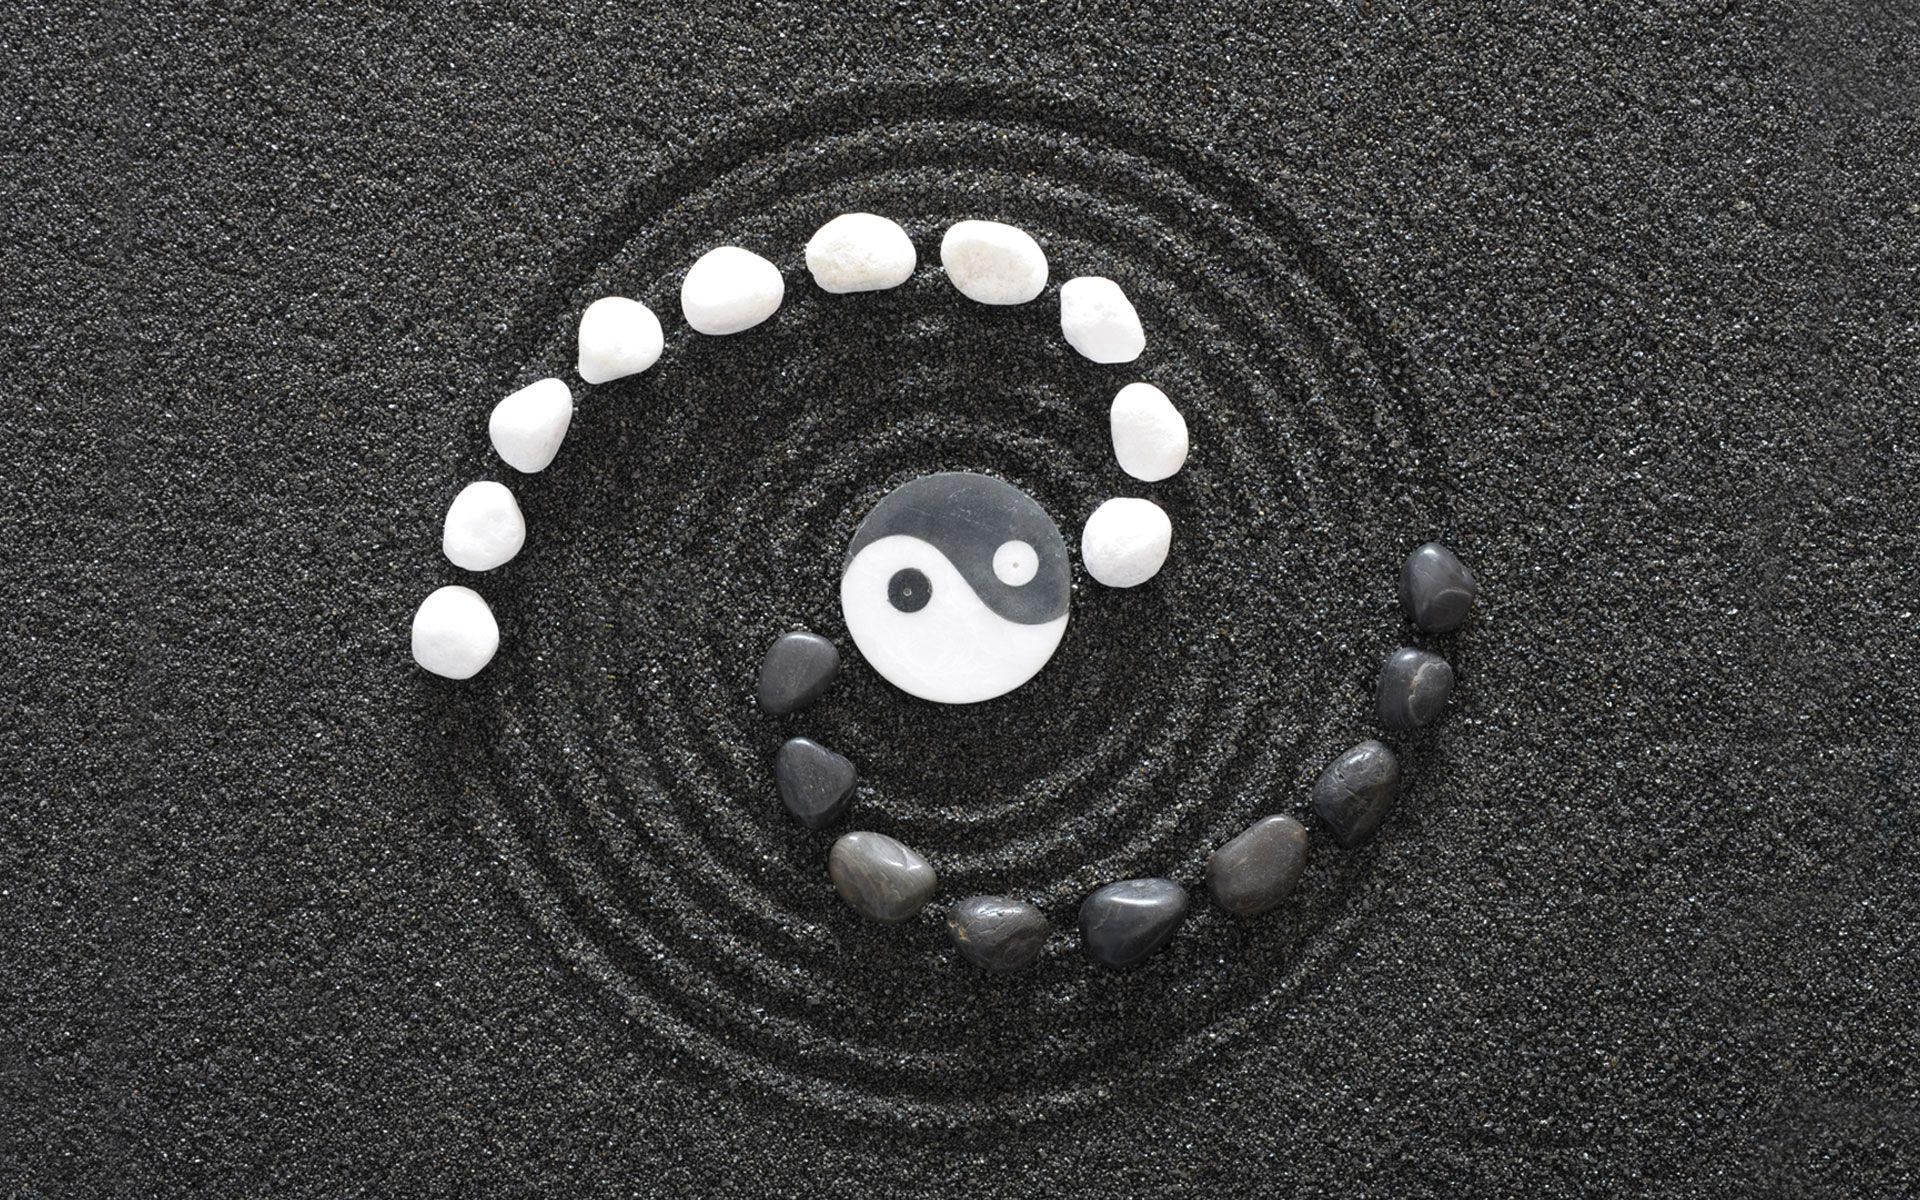 Yin And Yang Wallpaper Backgrounds with Wallpapers High Quality